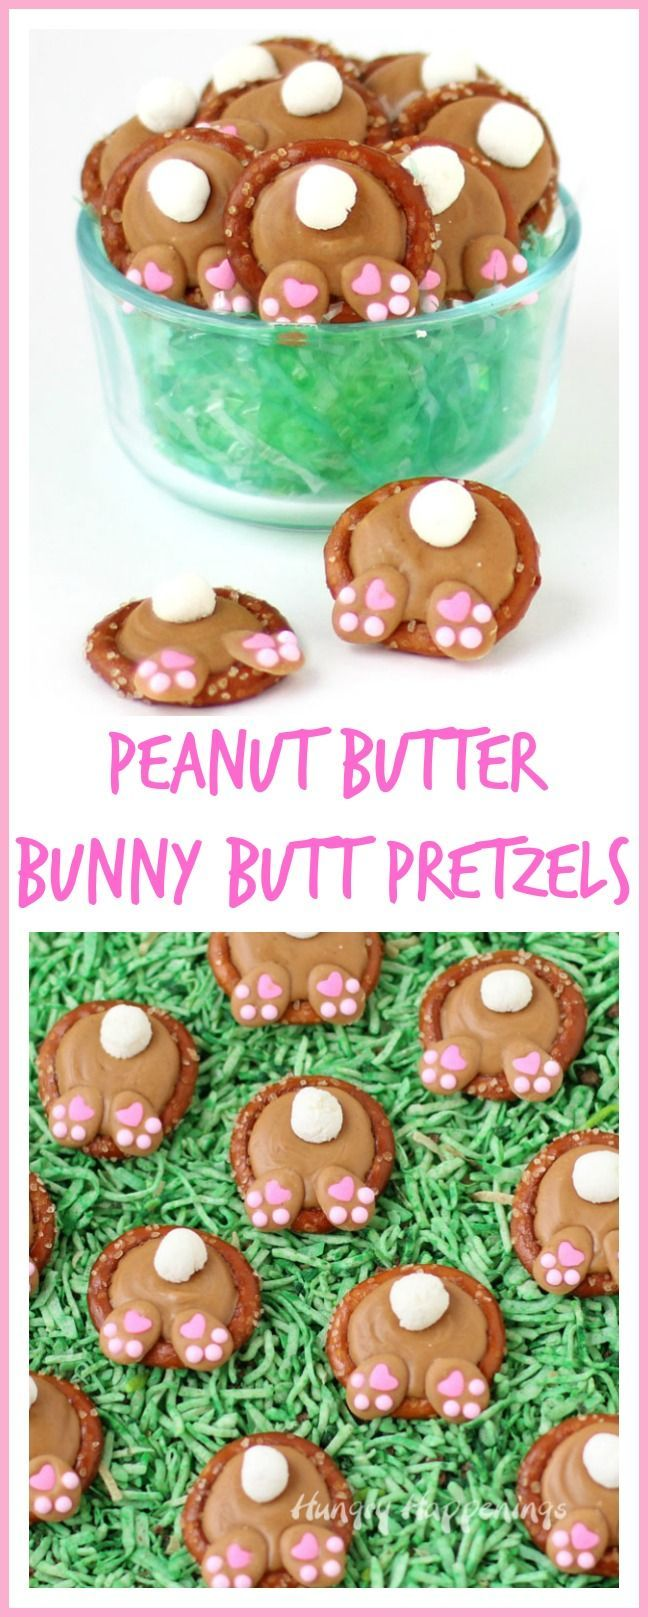 Peanut Butter Bunny Butt Pretzels make adorable additions to your Easter baskets.